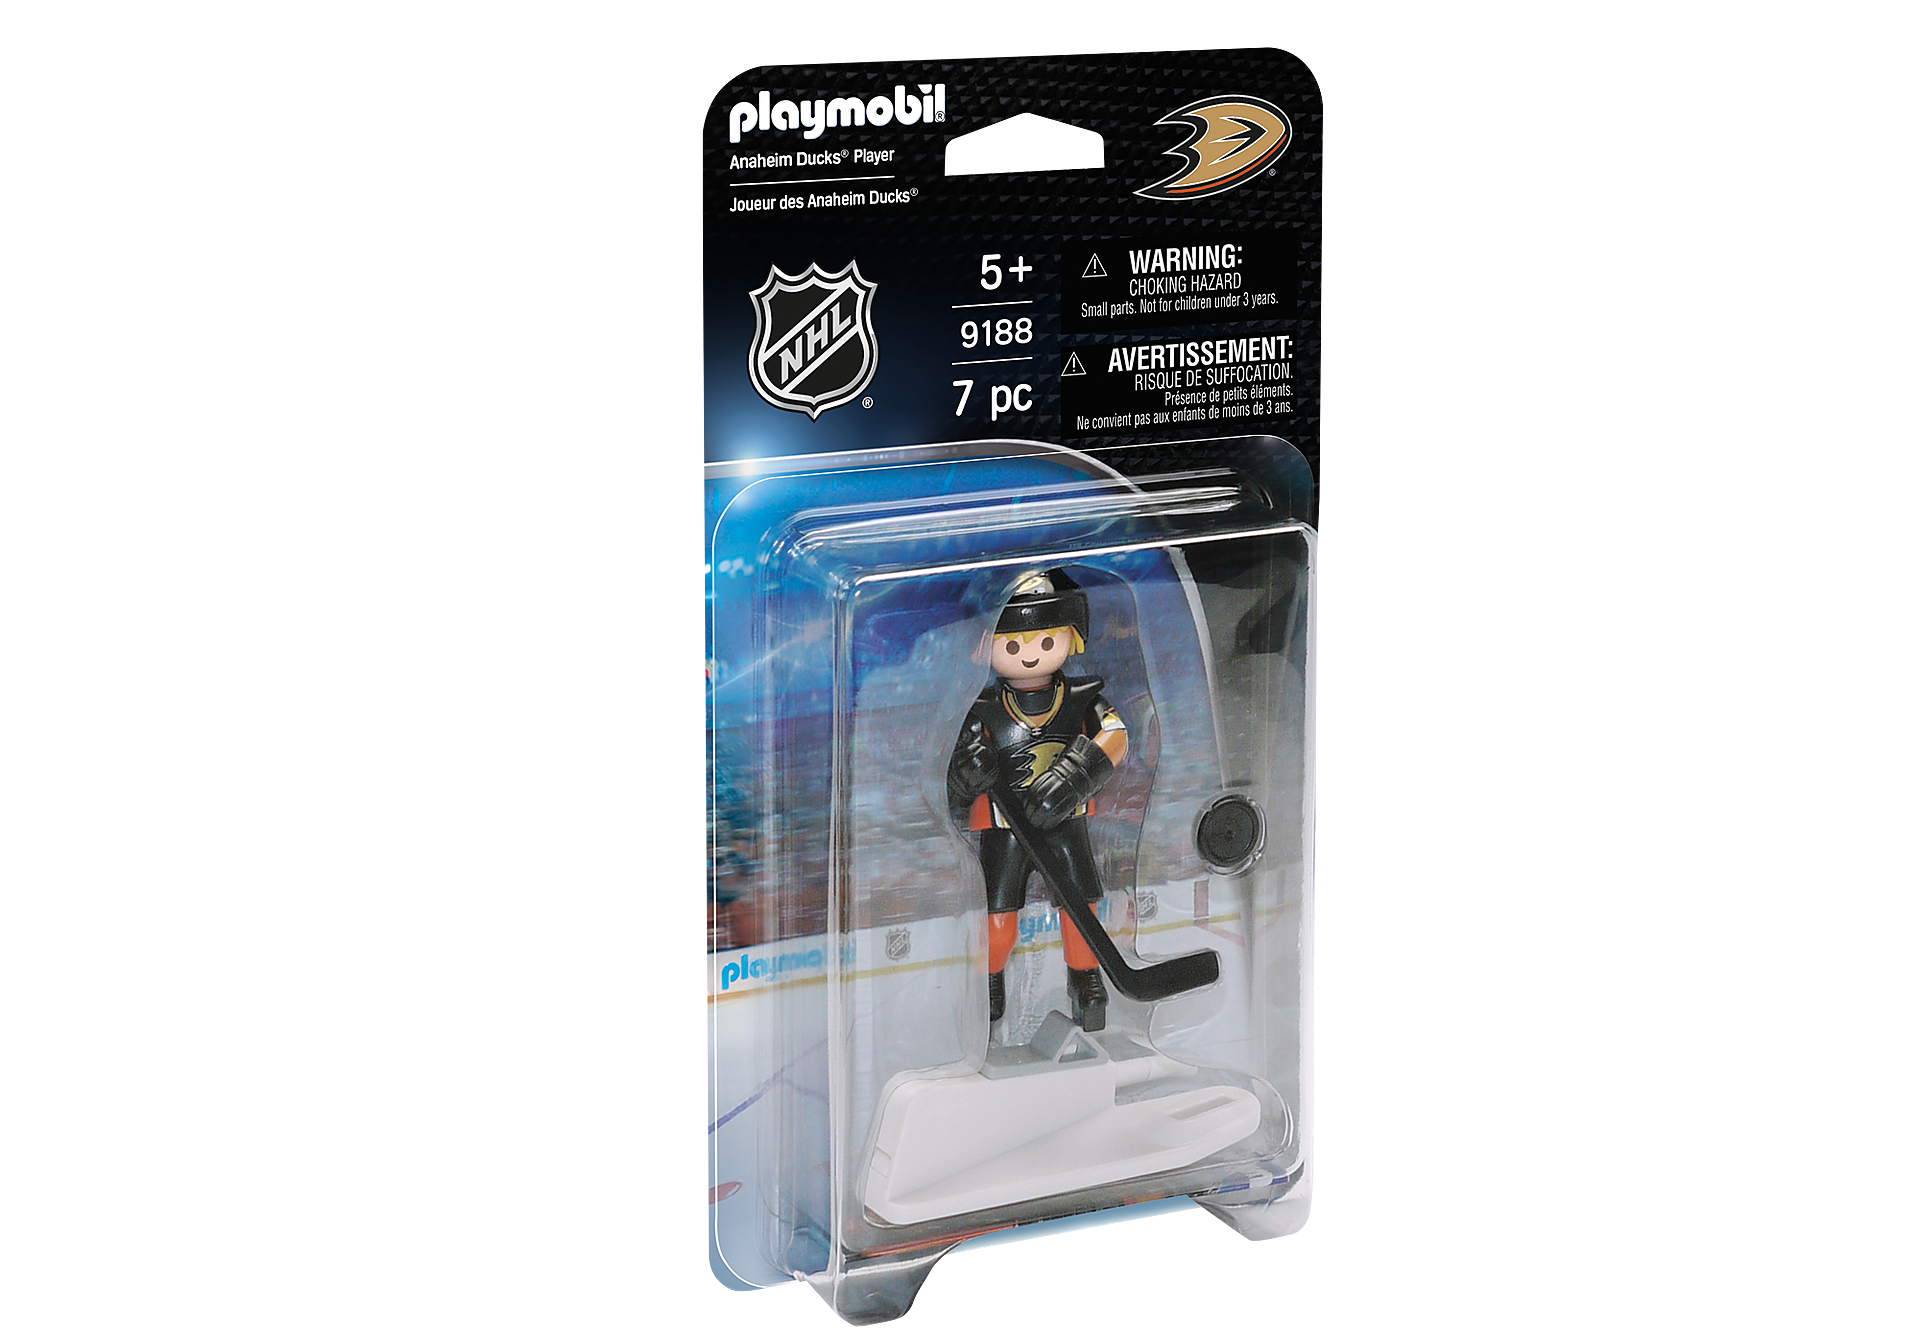 http://media.playmobil.com/i/playmobil/9188_product_box_front/NHL™ Anaheim Ducks™Player